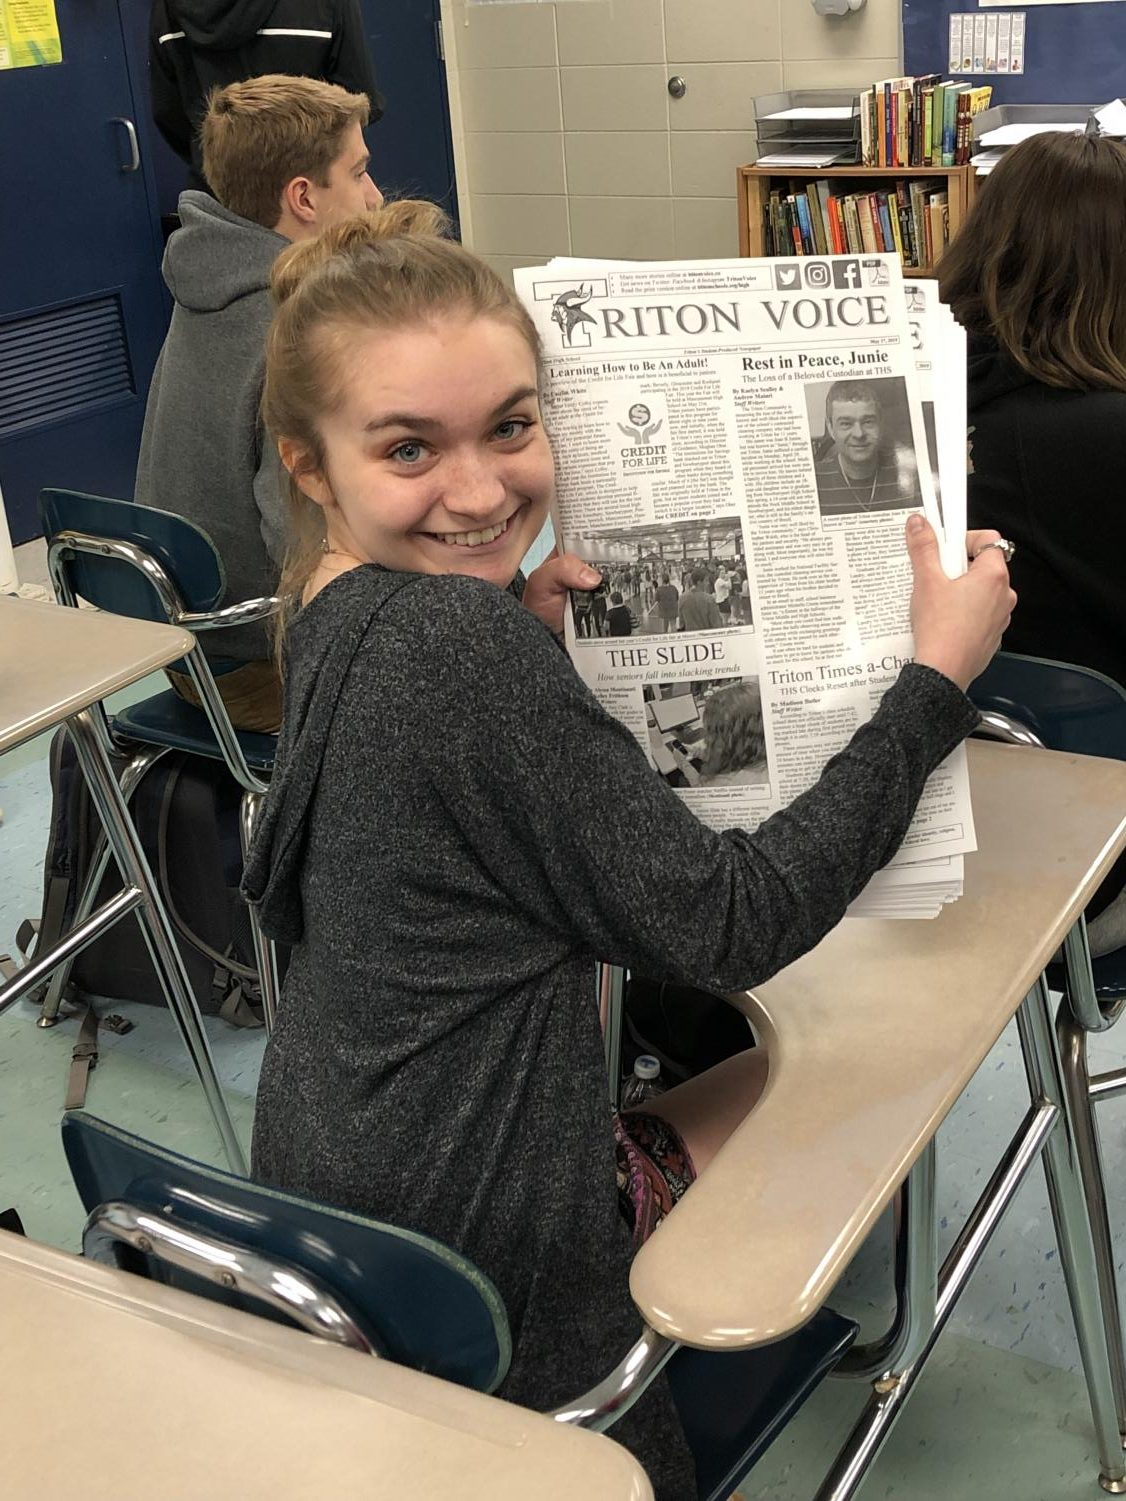 Bridget Tucker preparing to deliver the weekly newspaper to the neighboring Triton classrooms